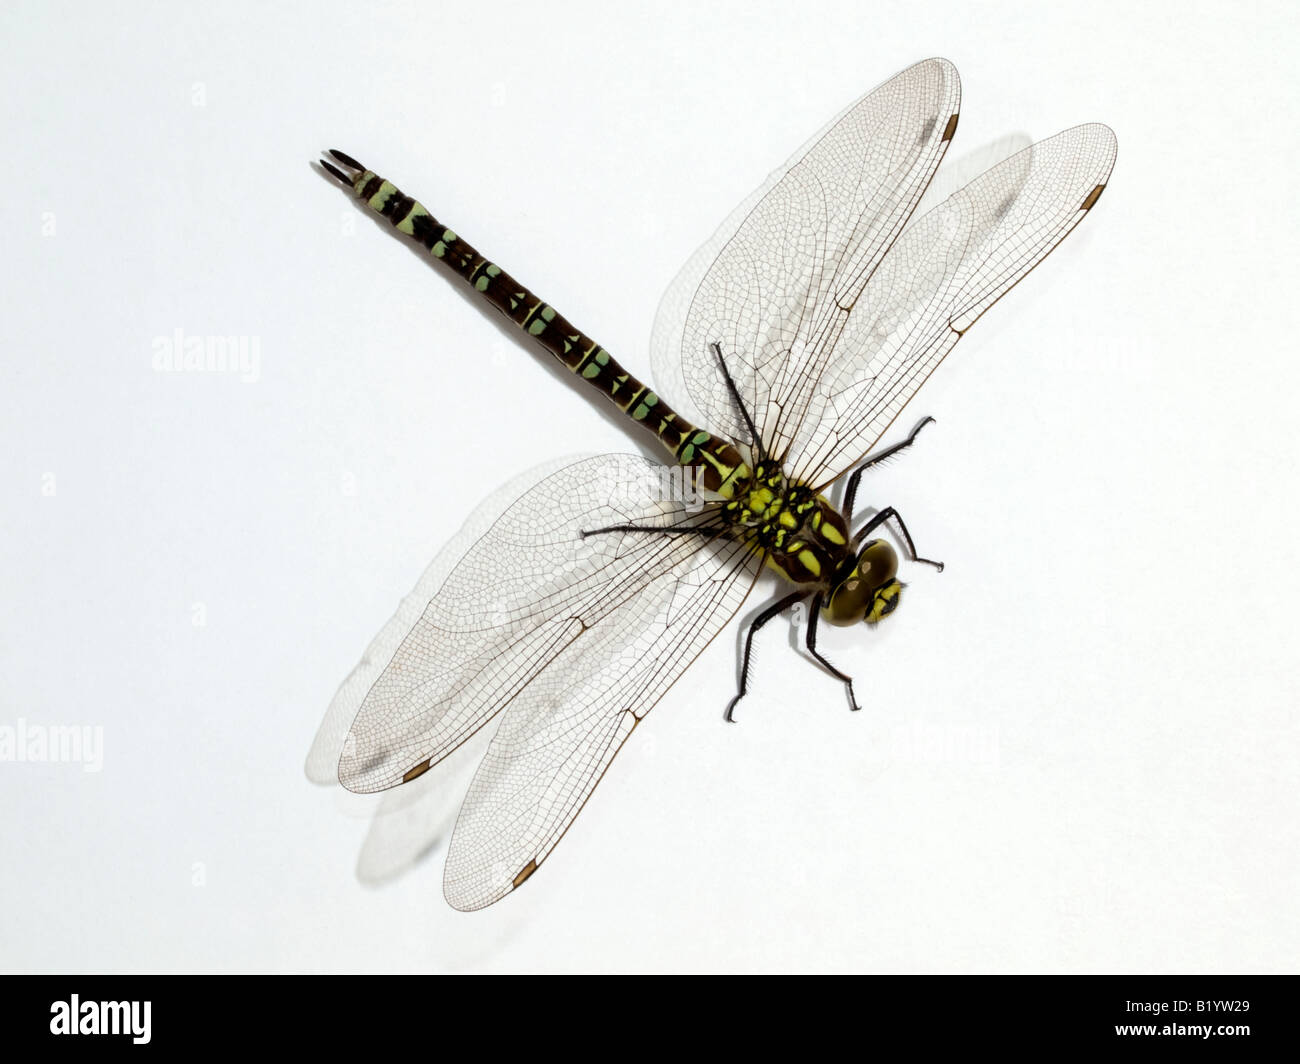 Southern Hawker Dragonfly - Stock Image